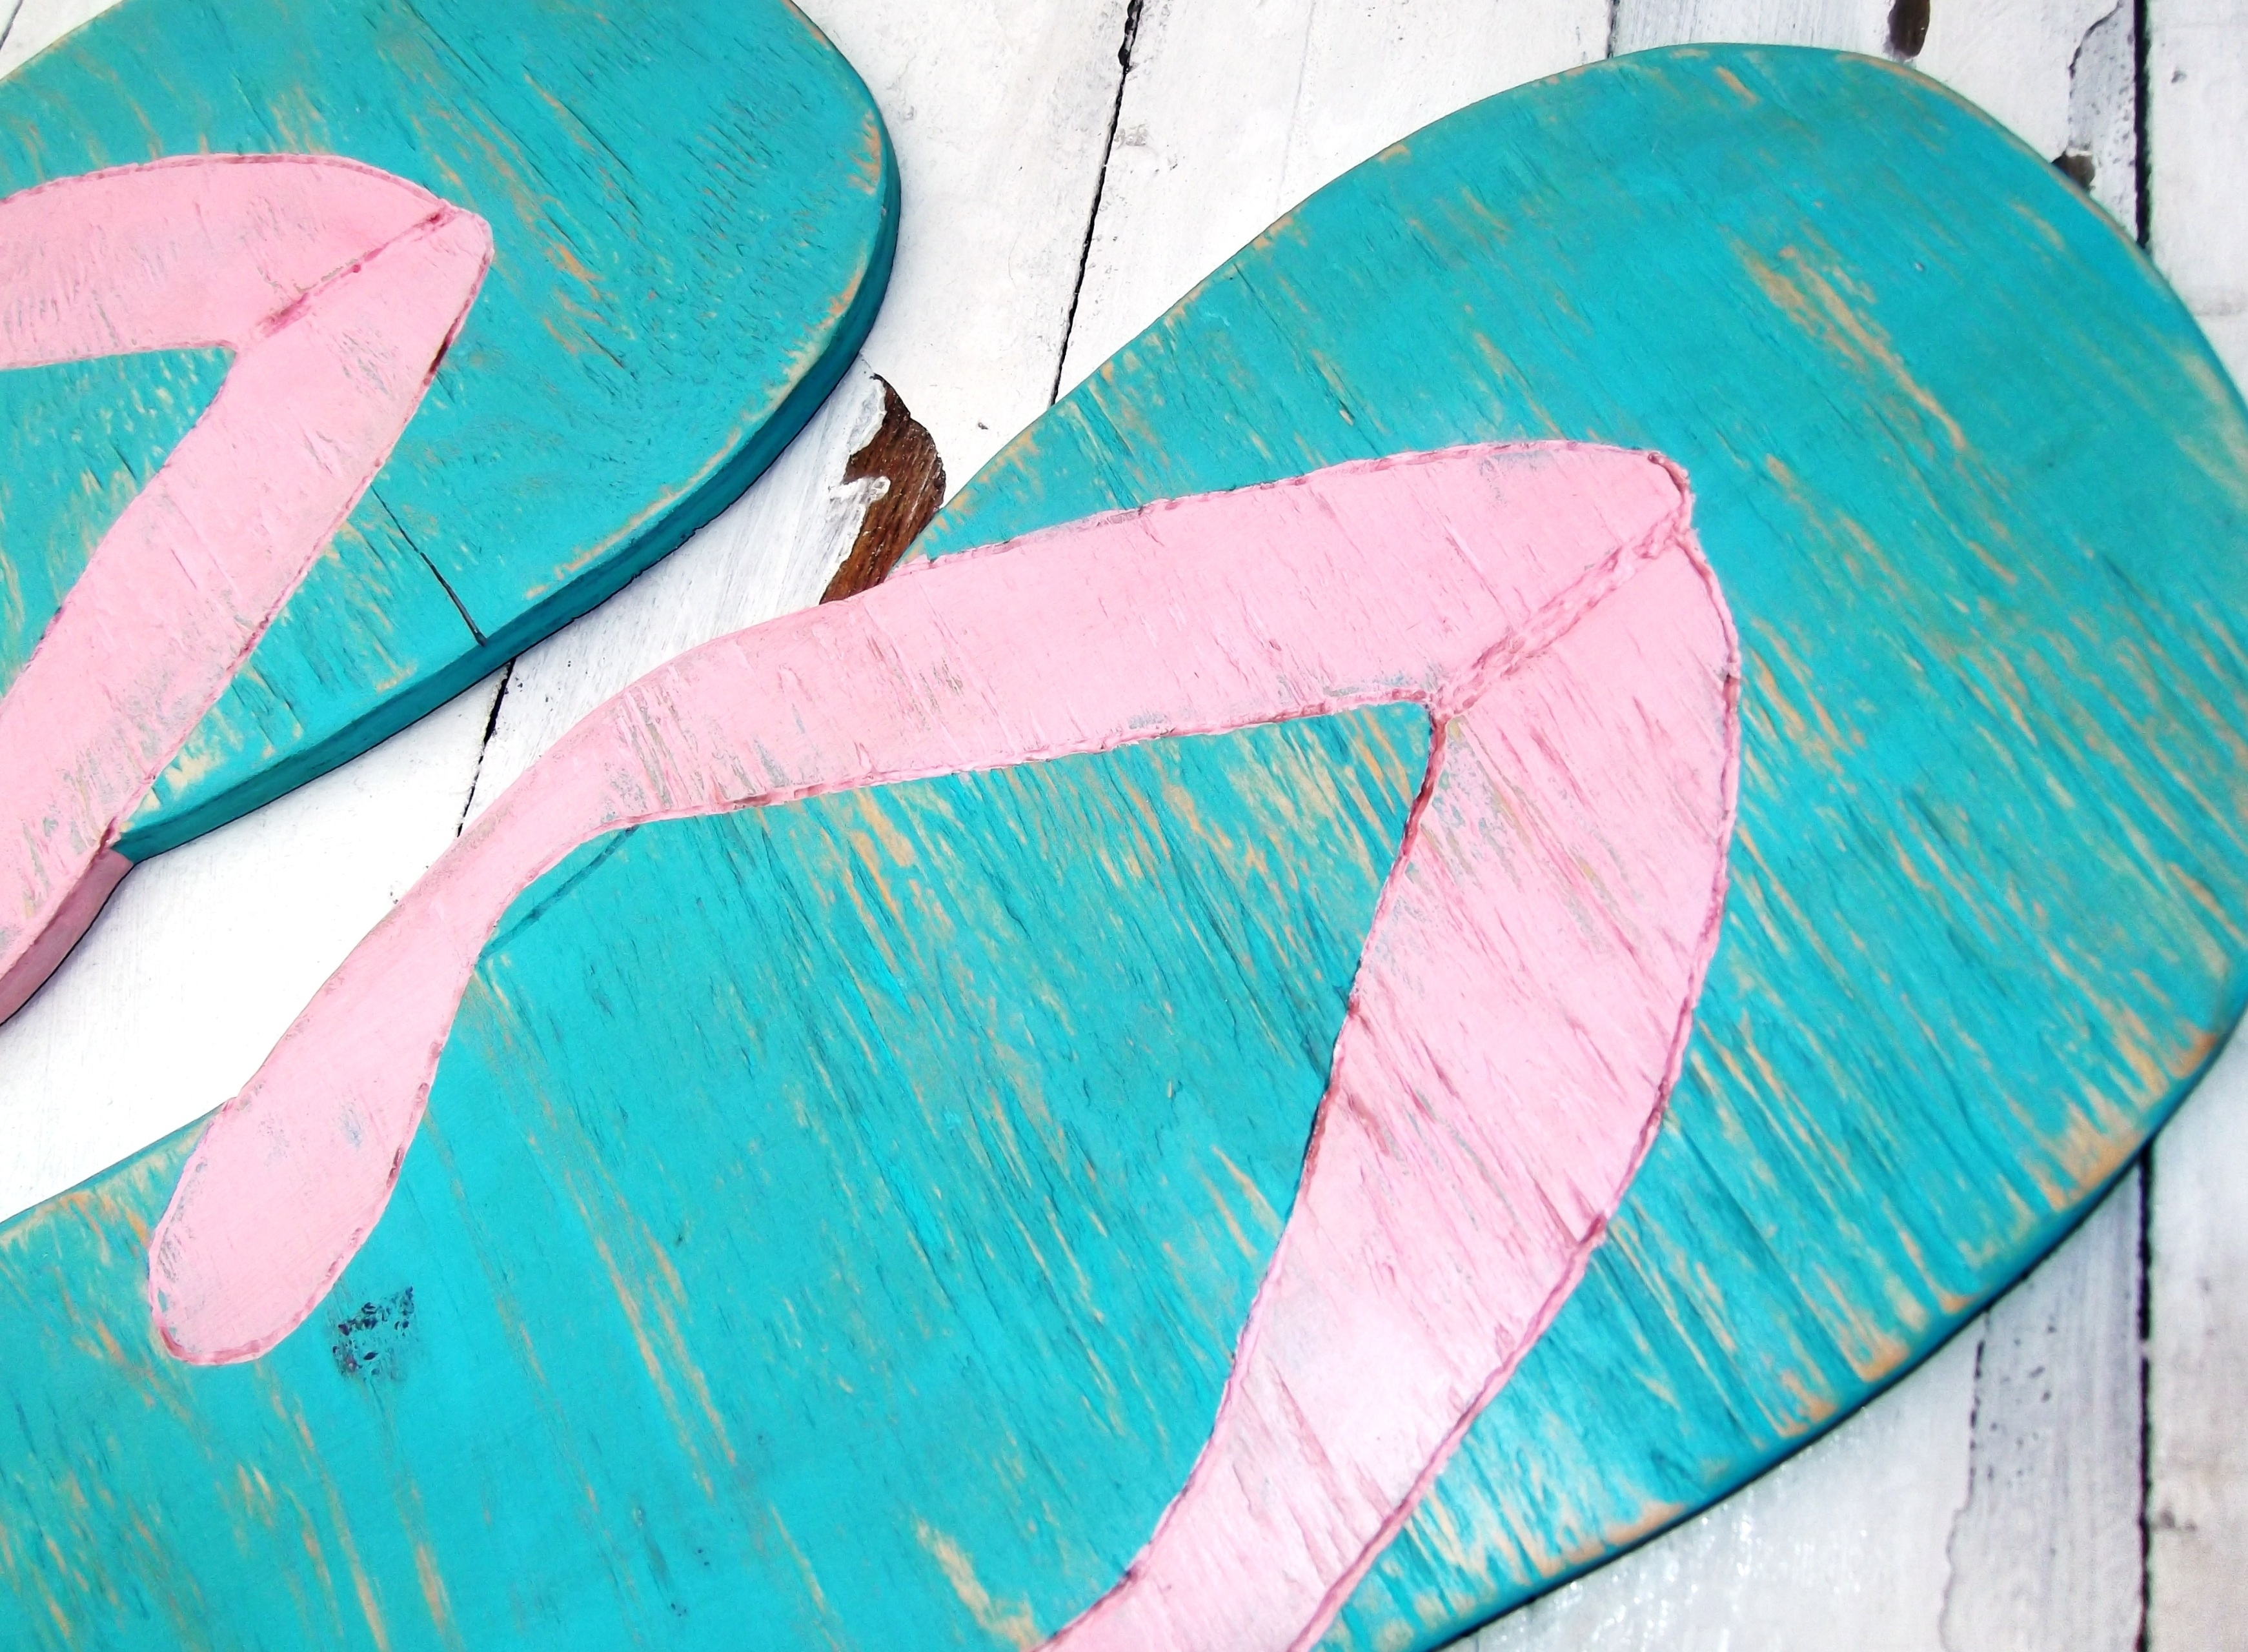 Huge Flip Flops Beach House Decoration, Wedding Decor Supersized Within Most Popular Flip Flop Wall Art (View 2 of 15)